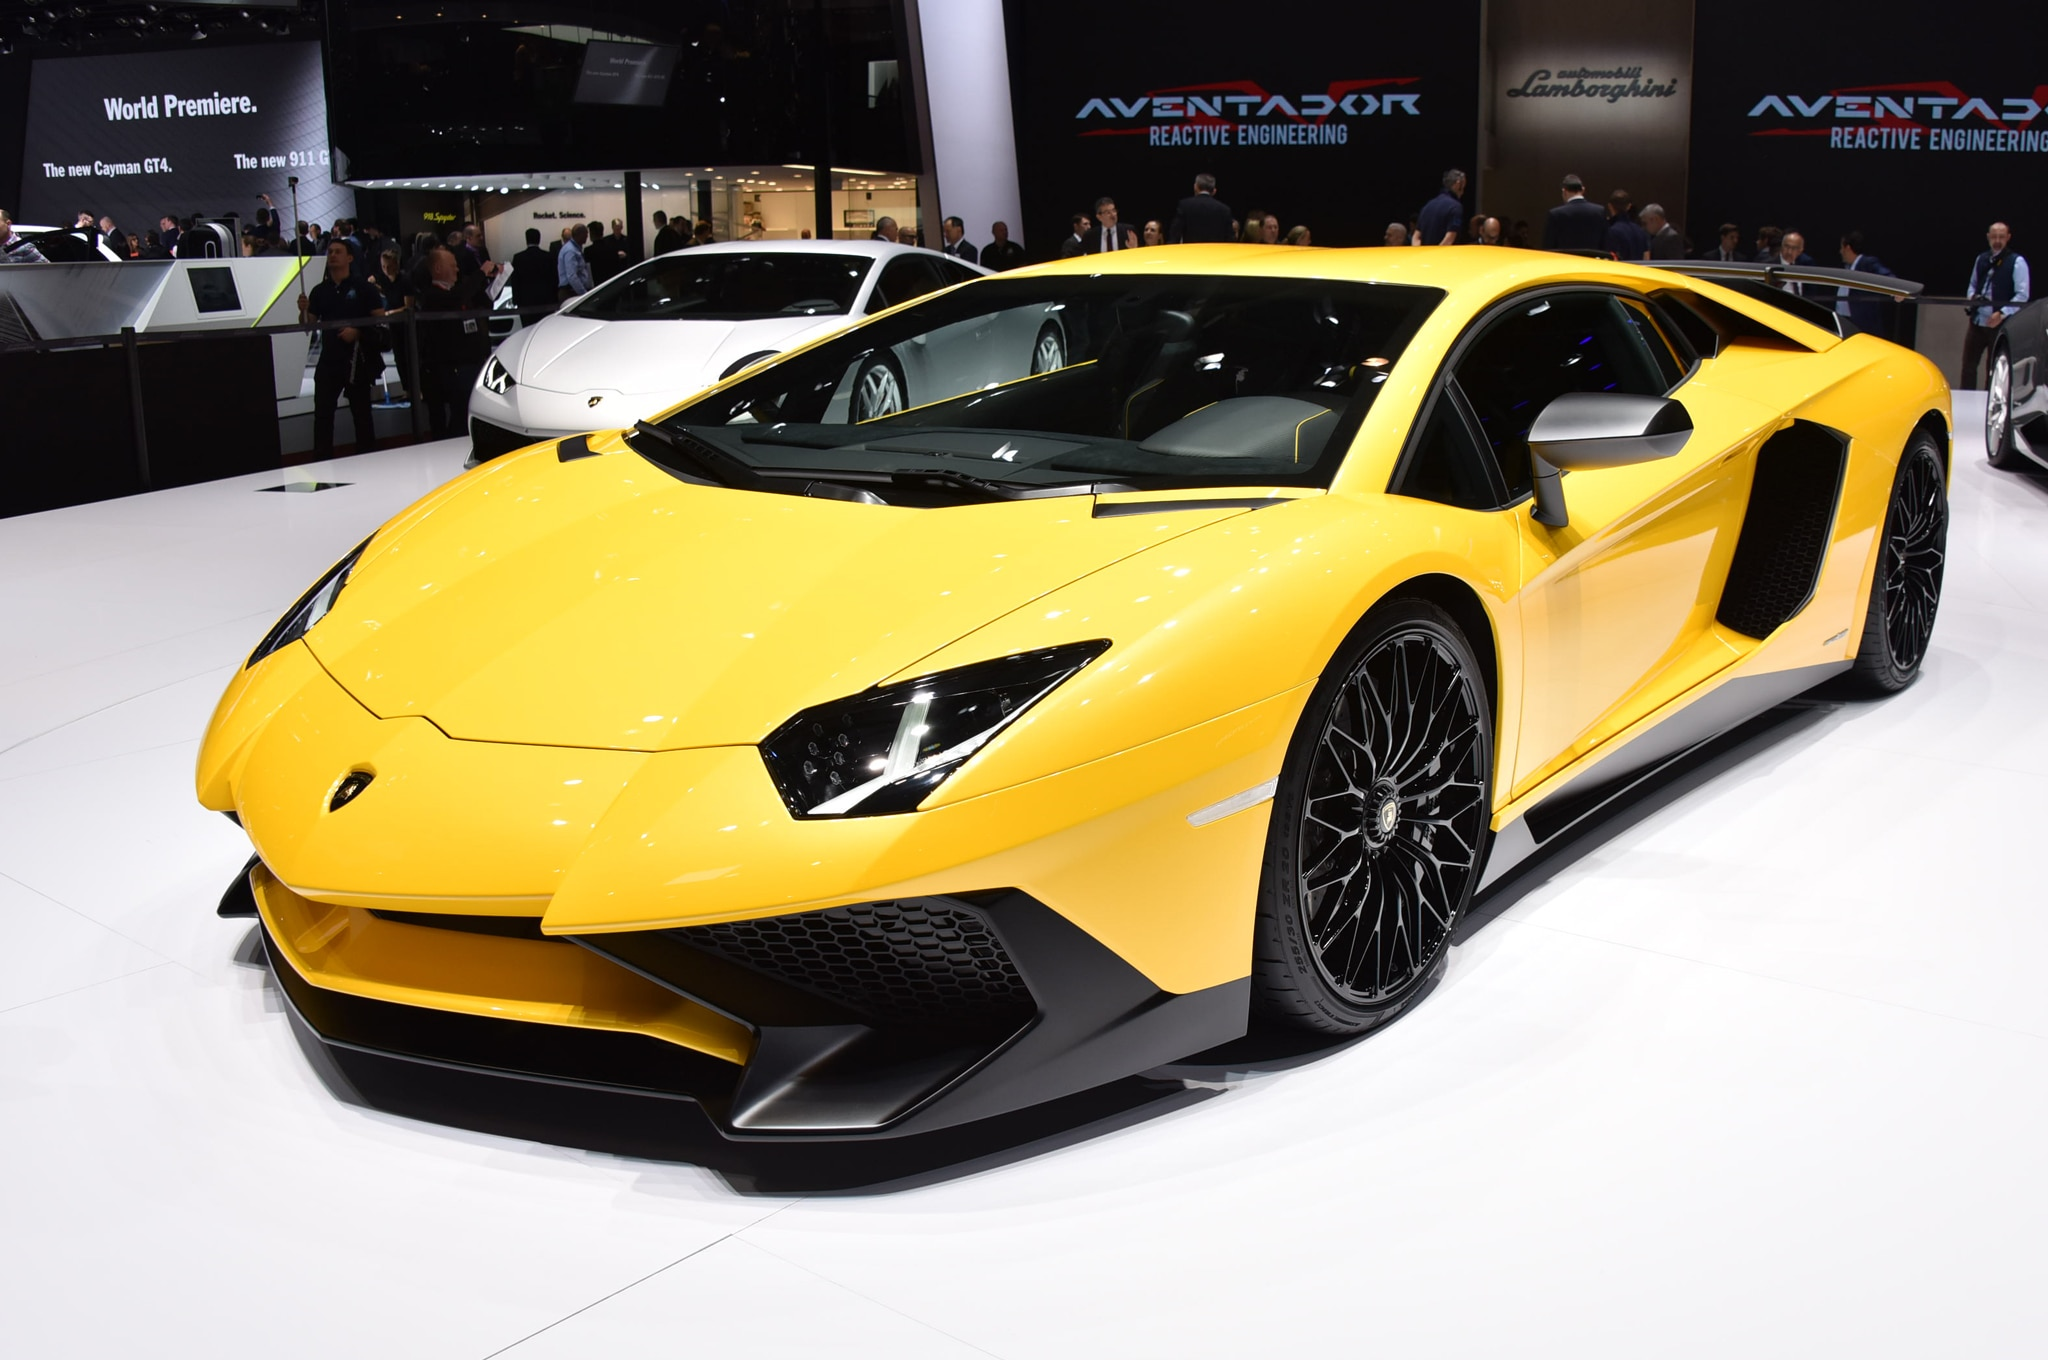 2016 Lamborghini Aventador Lp750 4 Sv Starts At 493 095 In The U S